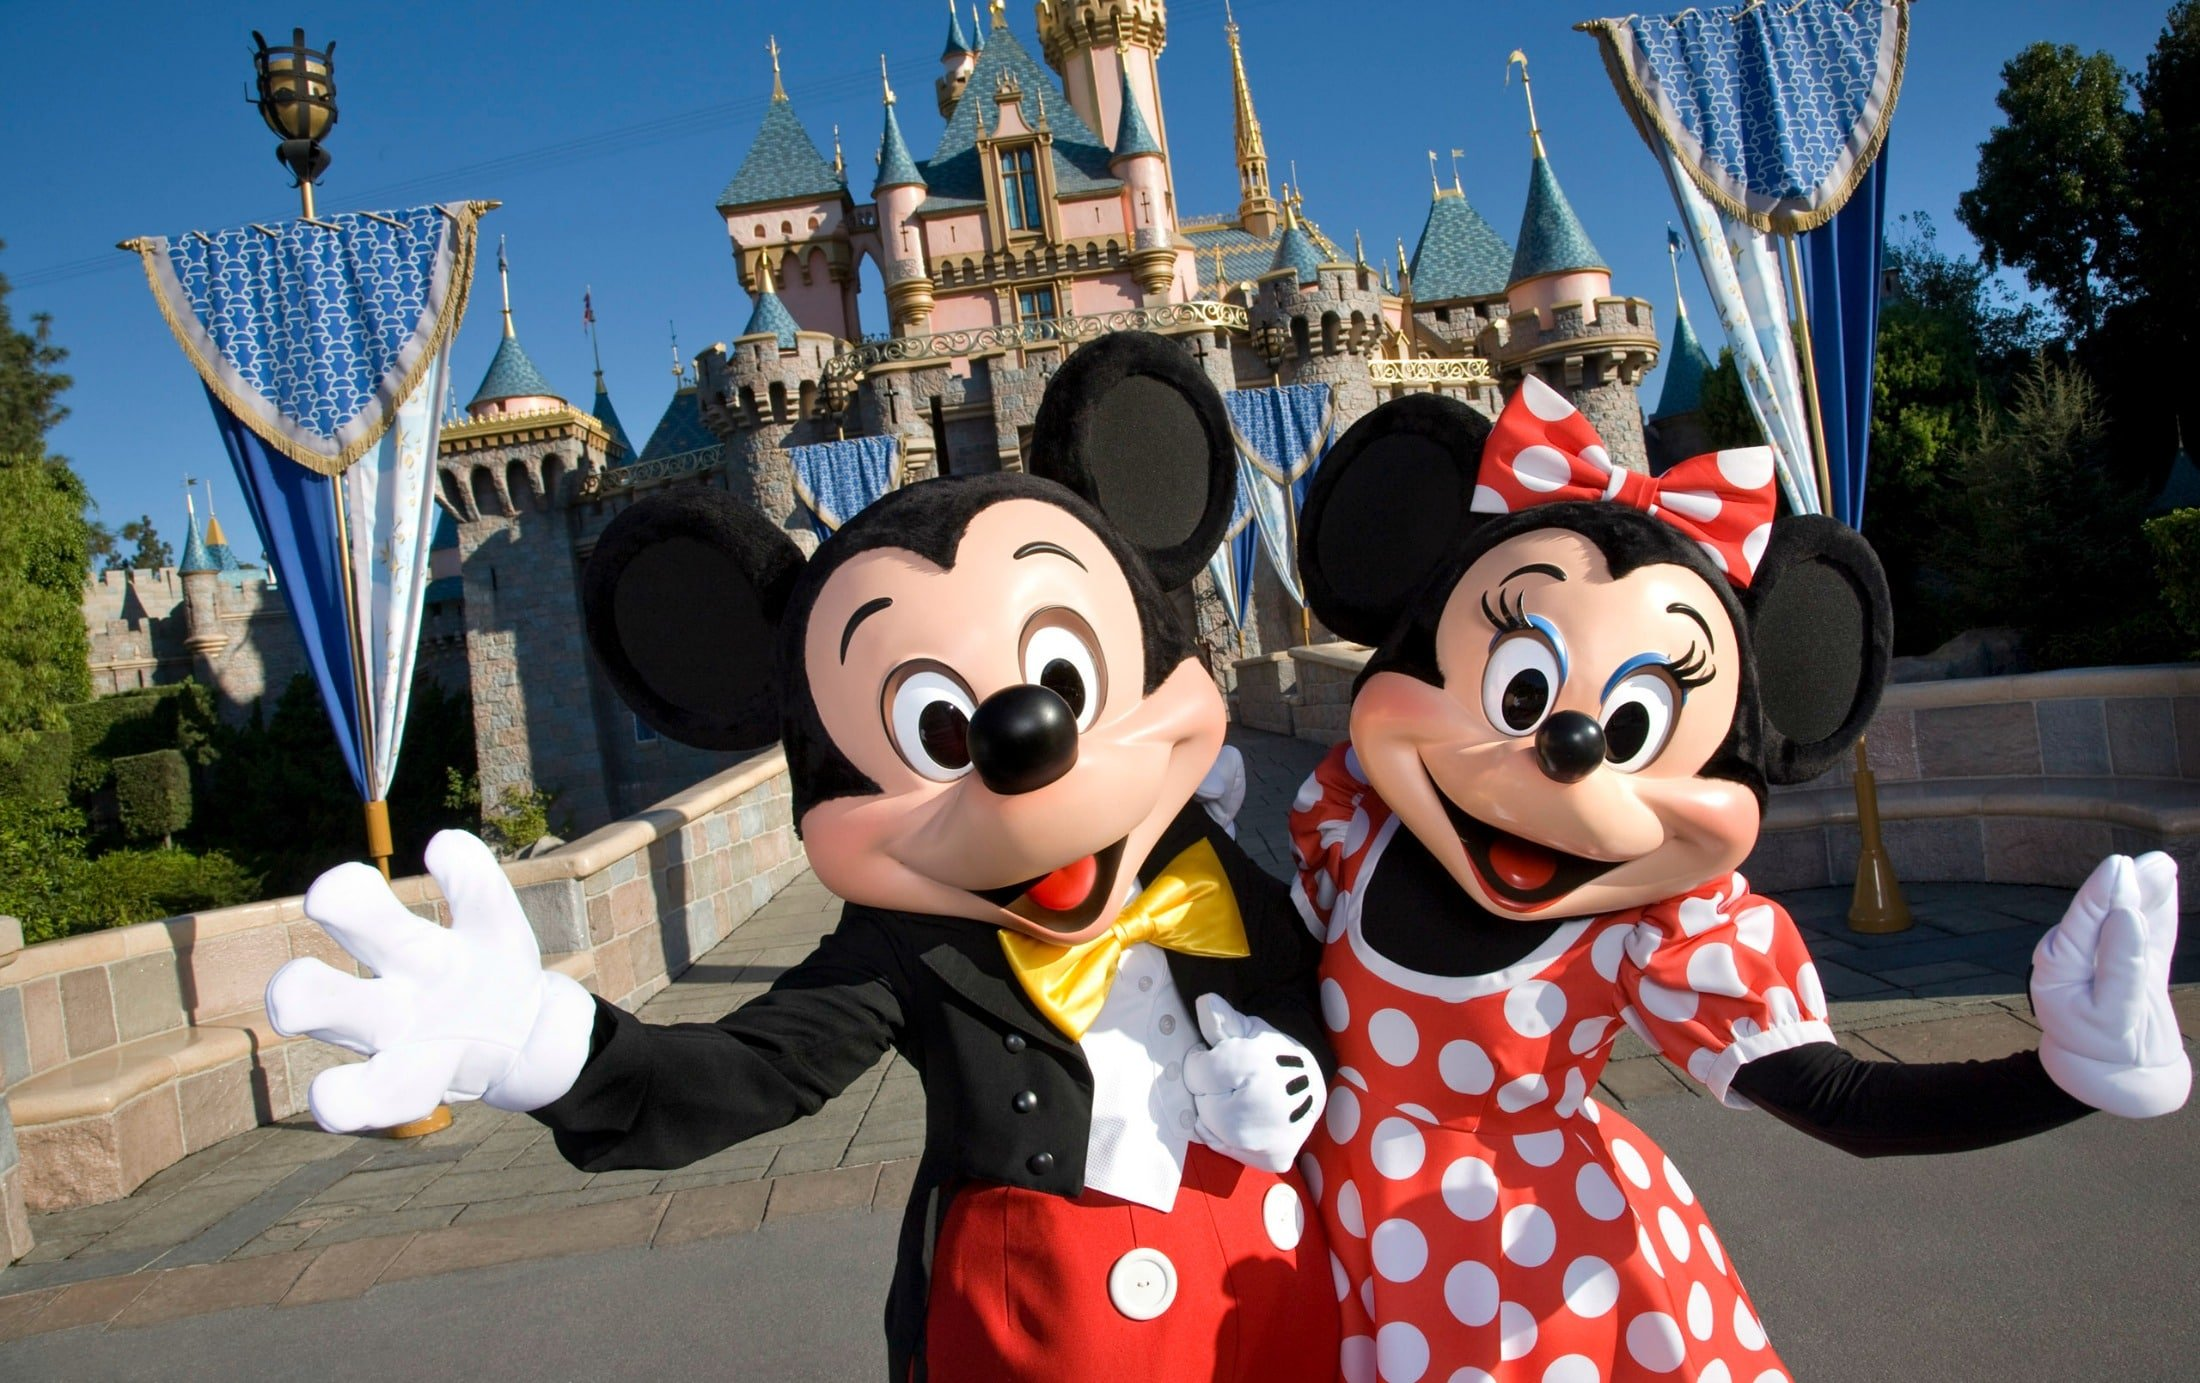 Disneyland by far the most popular family vacations in California